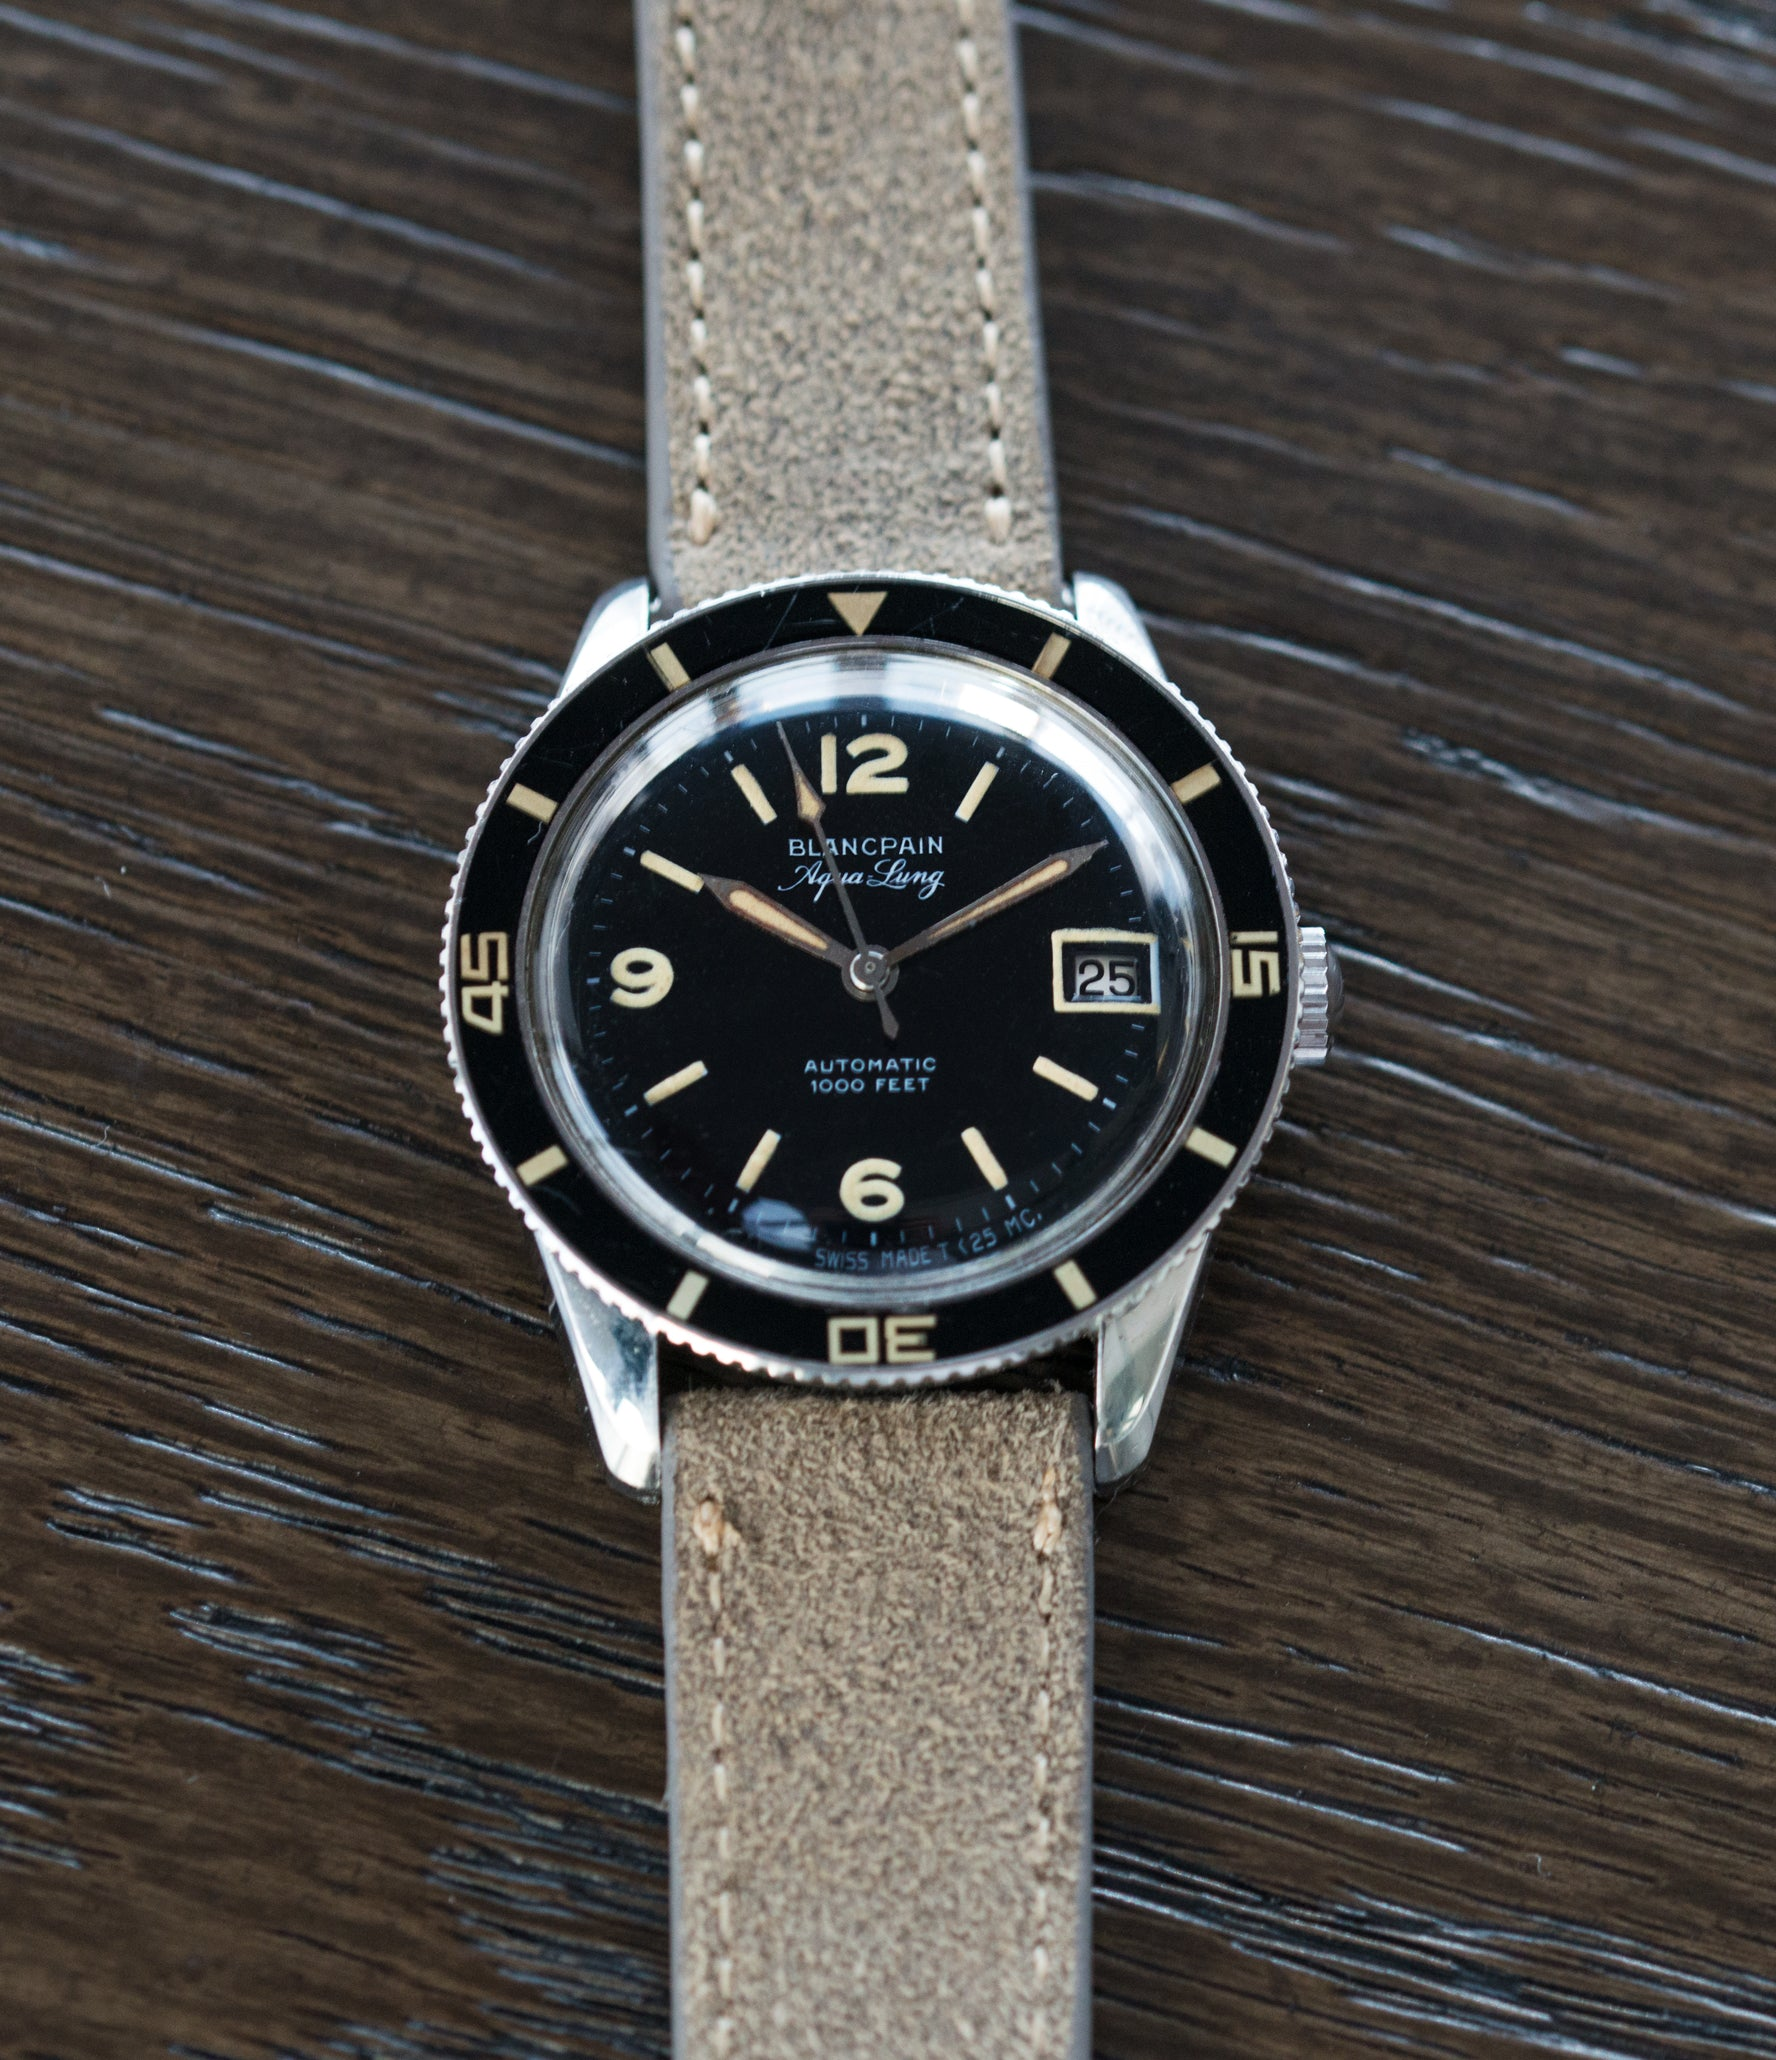 vintage watch Fifty Fathoms Blancpain Aqua Lung Bakelite bezel Gloss Dial Cal. AS 1700/01 vintage sport watch black dial for sale online at A Collected Man London UK specialist rare, vintage watches